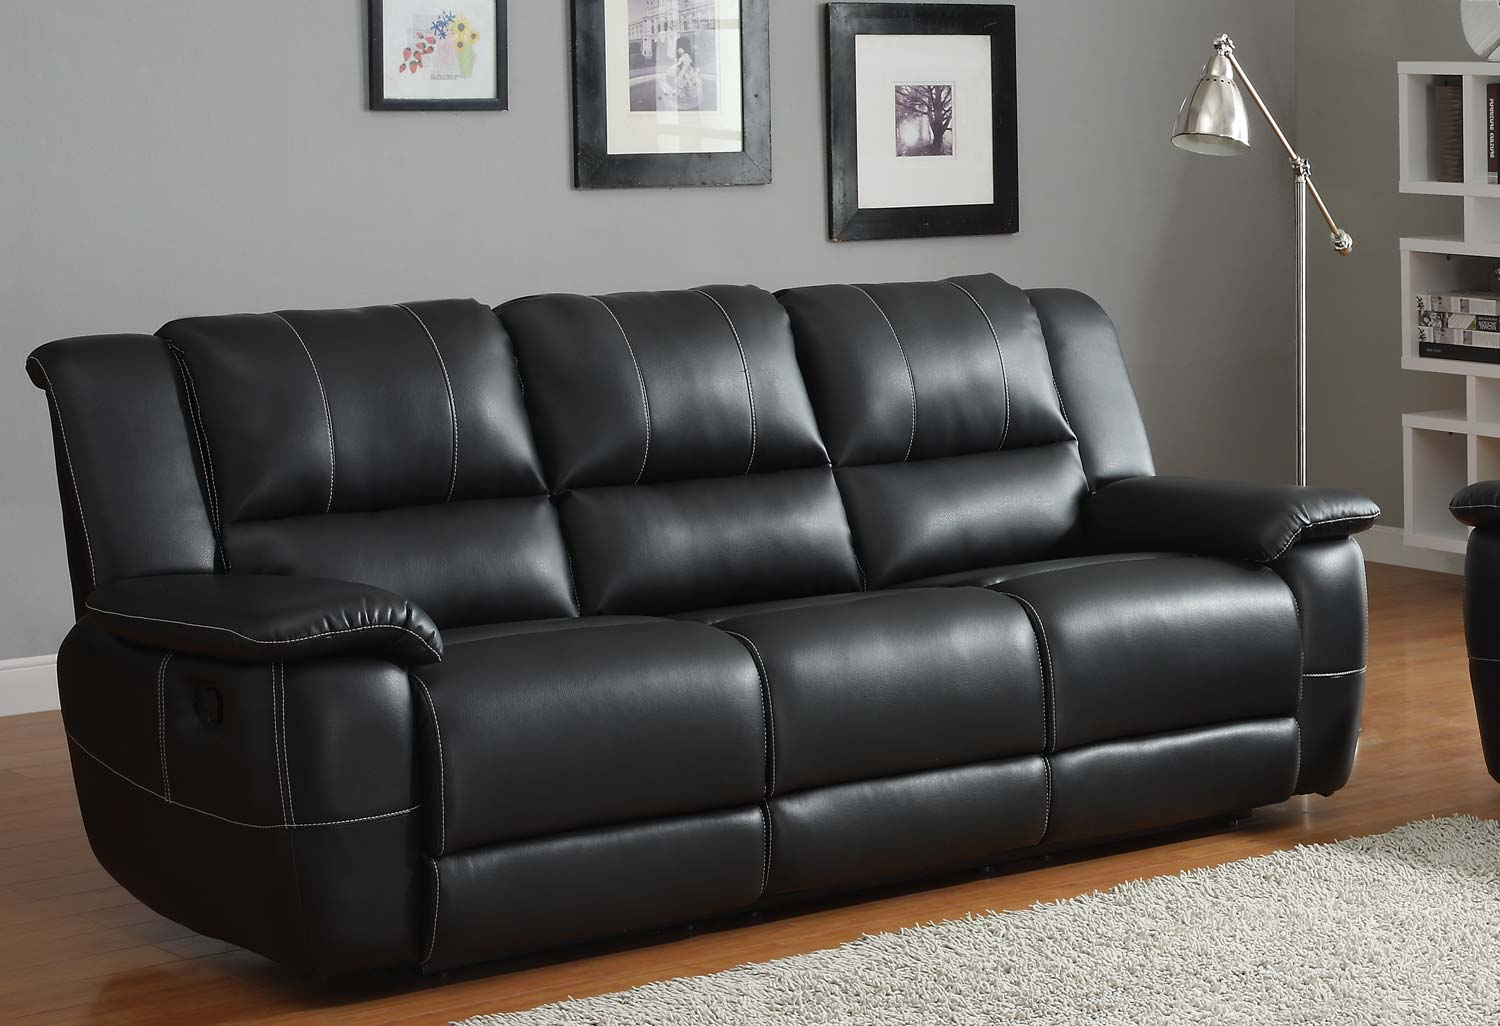 Homelegance Cantrell Reclining Sofa Set - Black - Bonded ...